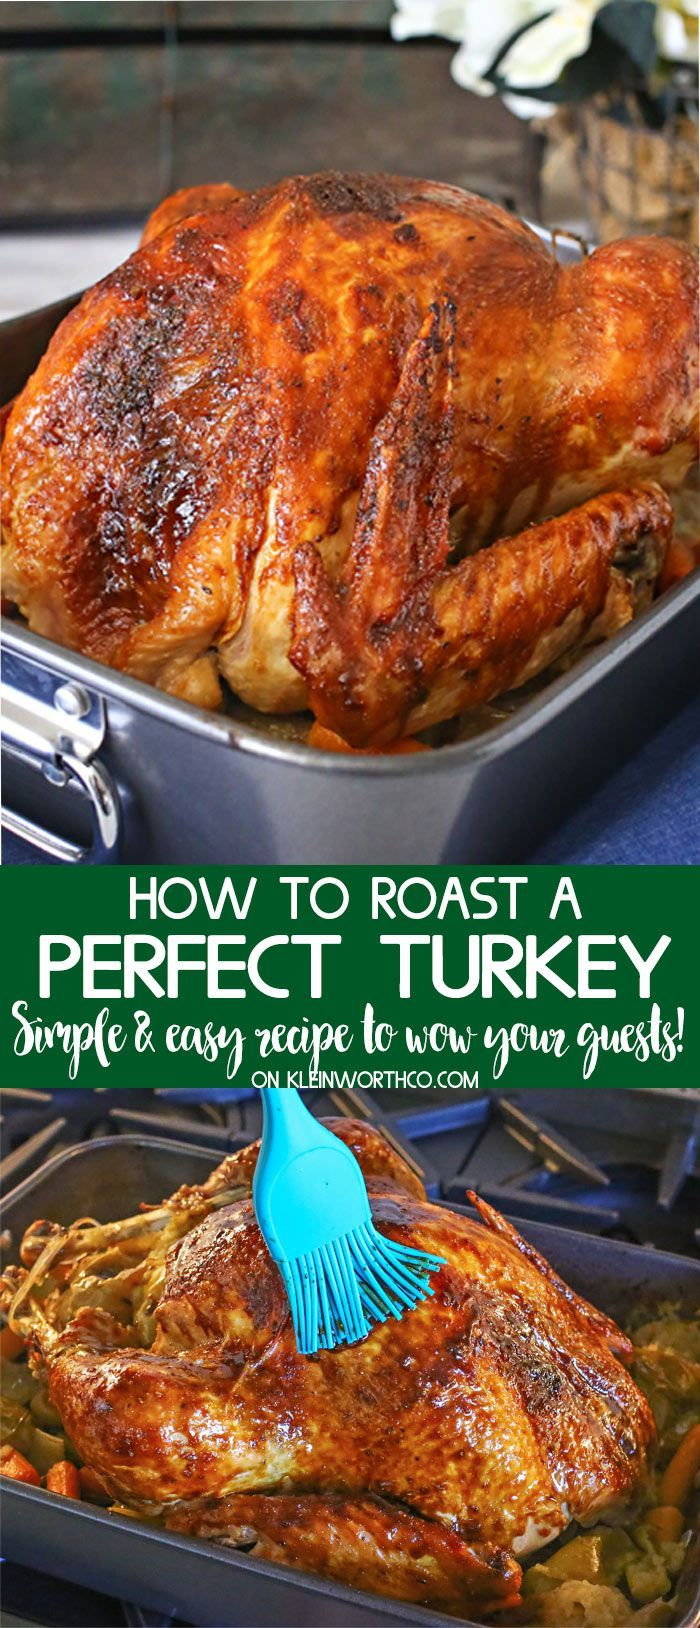 Easy, simple & delicious recipe for How to Roast a Turkey